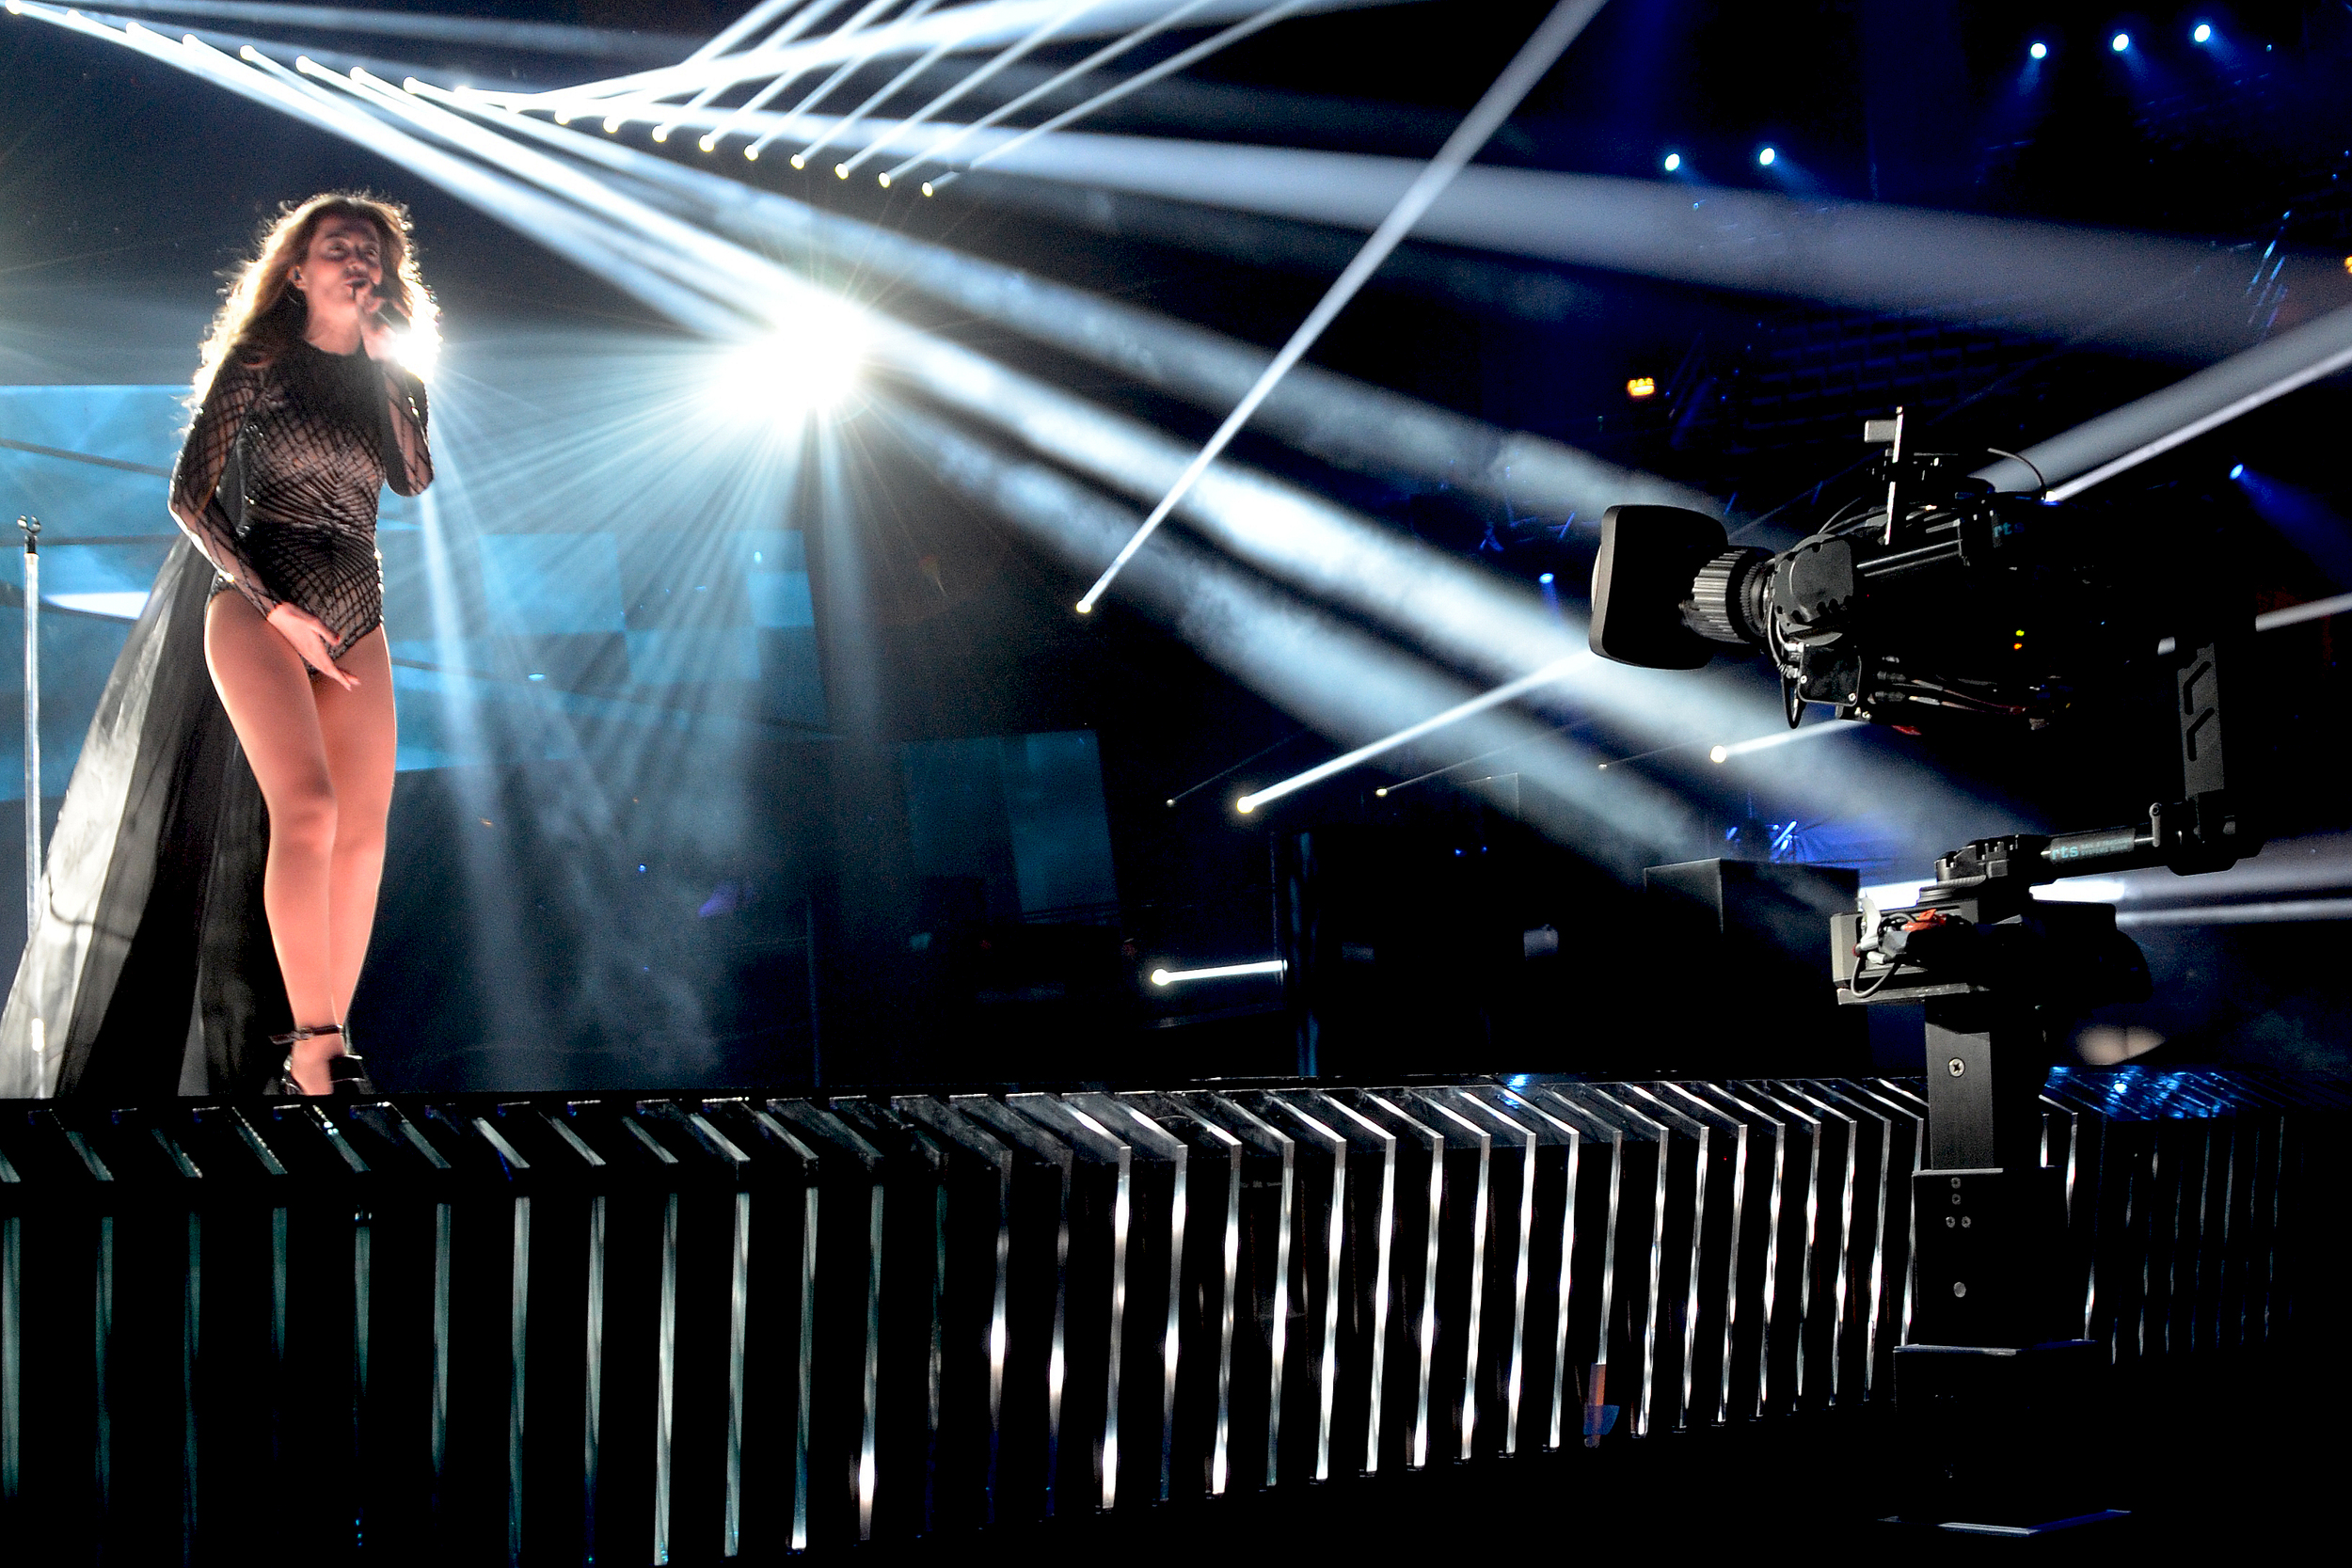 Swedish company Intuitive Aerial's Newton head and Dominion controller have now found a place in traditional land locked live broadcasting.